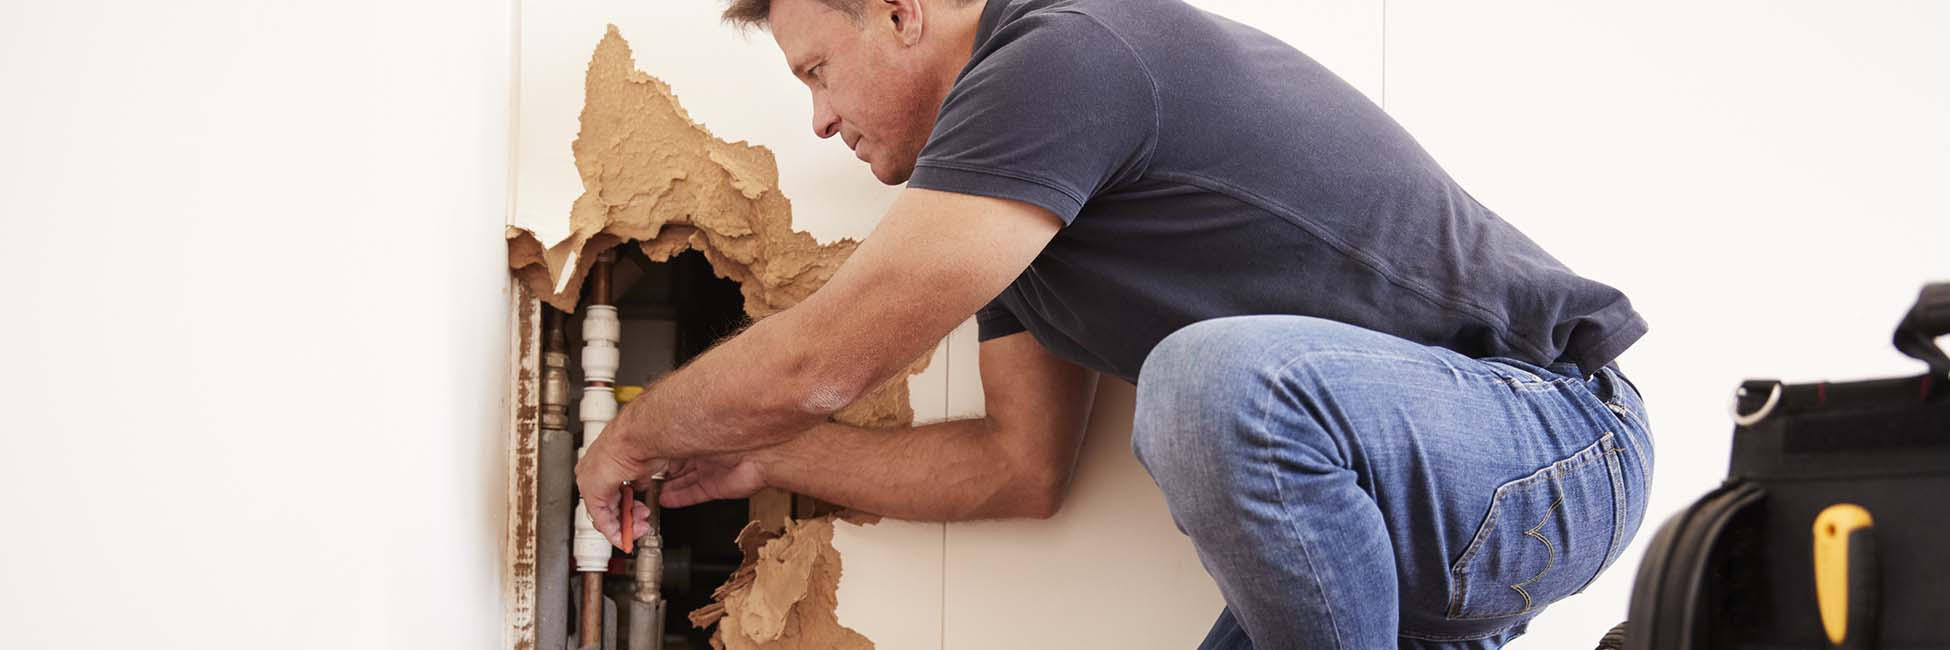 Water Damage Insurance Claims Adjuster in Florida